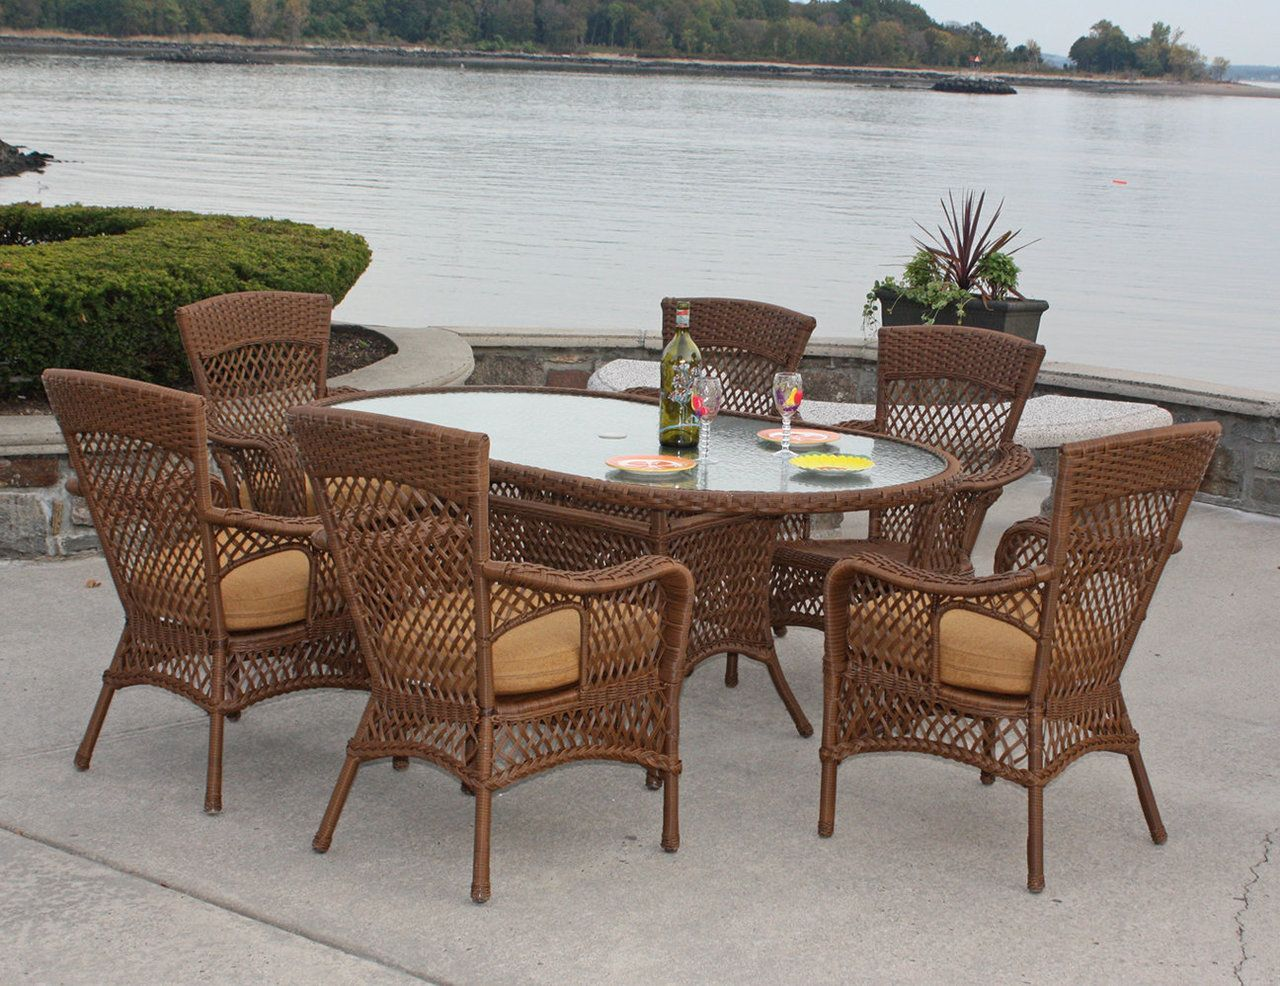 Genial #Vinyl Wicker #Dining #Set: #Savannah Wicker By Wicker... | Wicker Blog